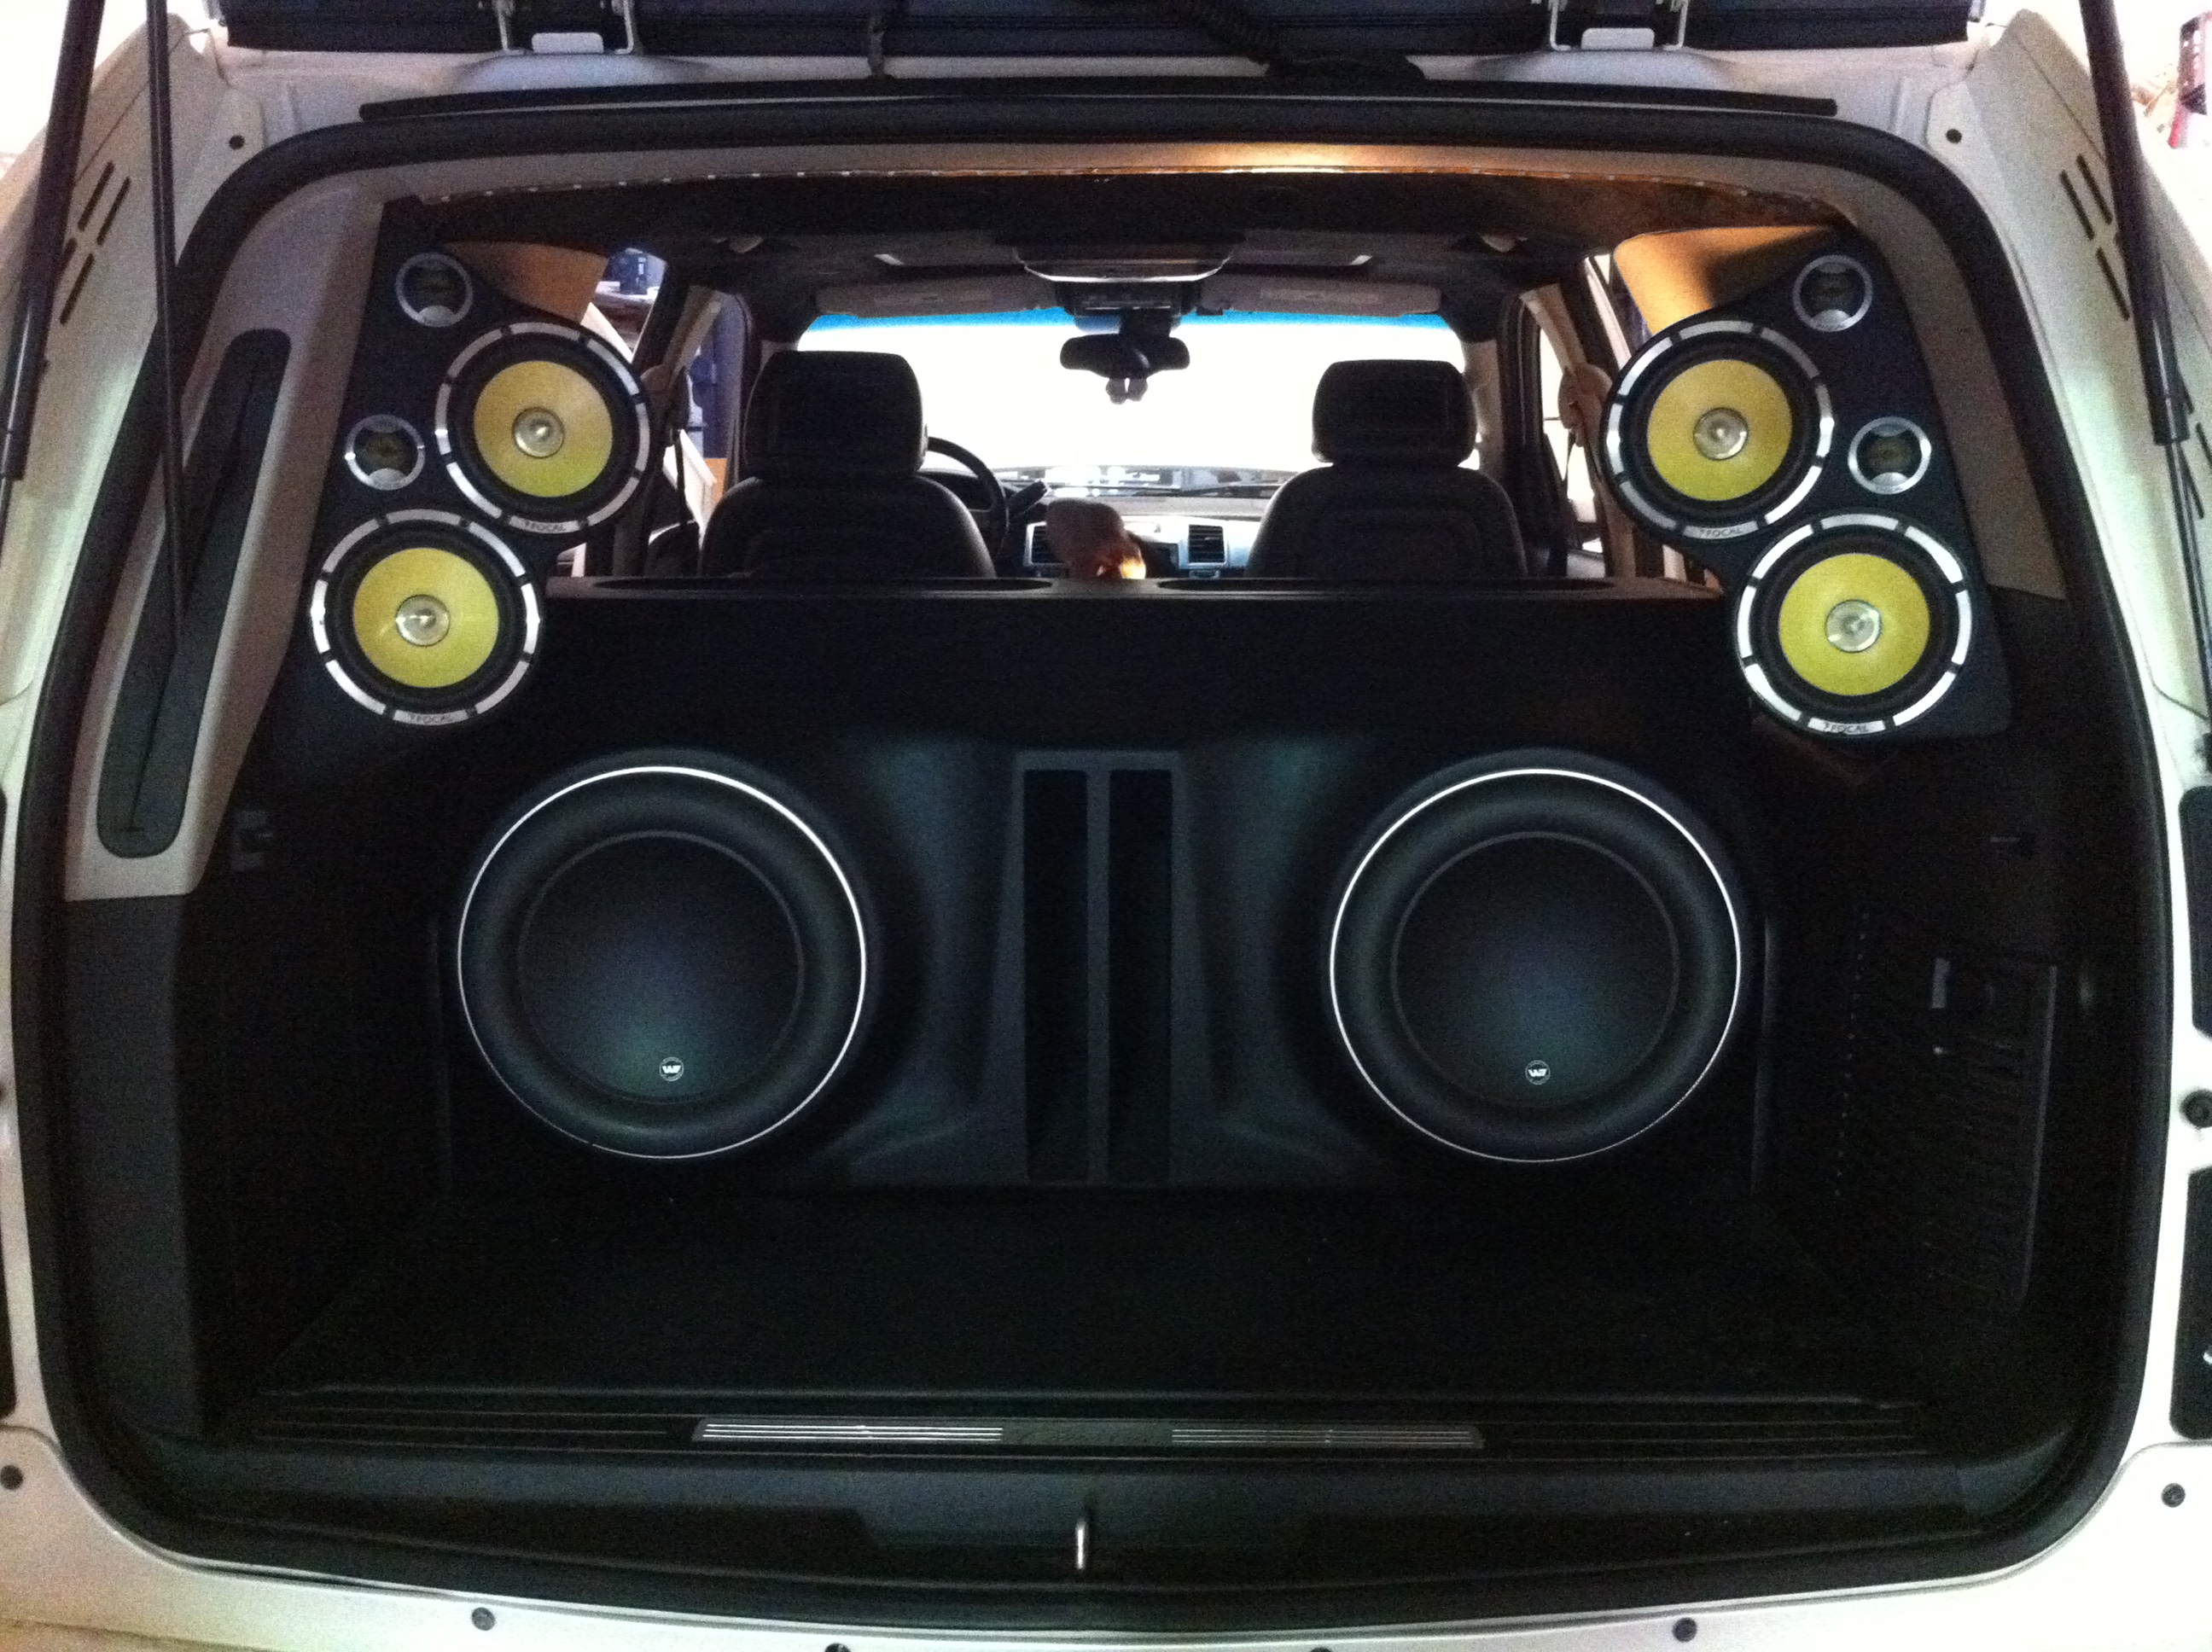 Watch in addition Audio Skoda Fabia Rear Door 17cm 210w Speakers Pods P 6175 additionally Watch likewise Cary Client Gets Amazing Toyota Corolla Stereo System Upgrade together with Fathead Wall Decals. on car audio door speaker pods